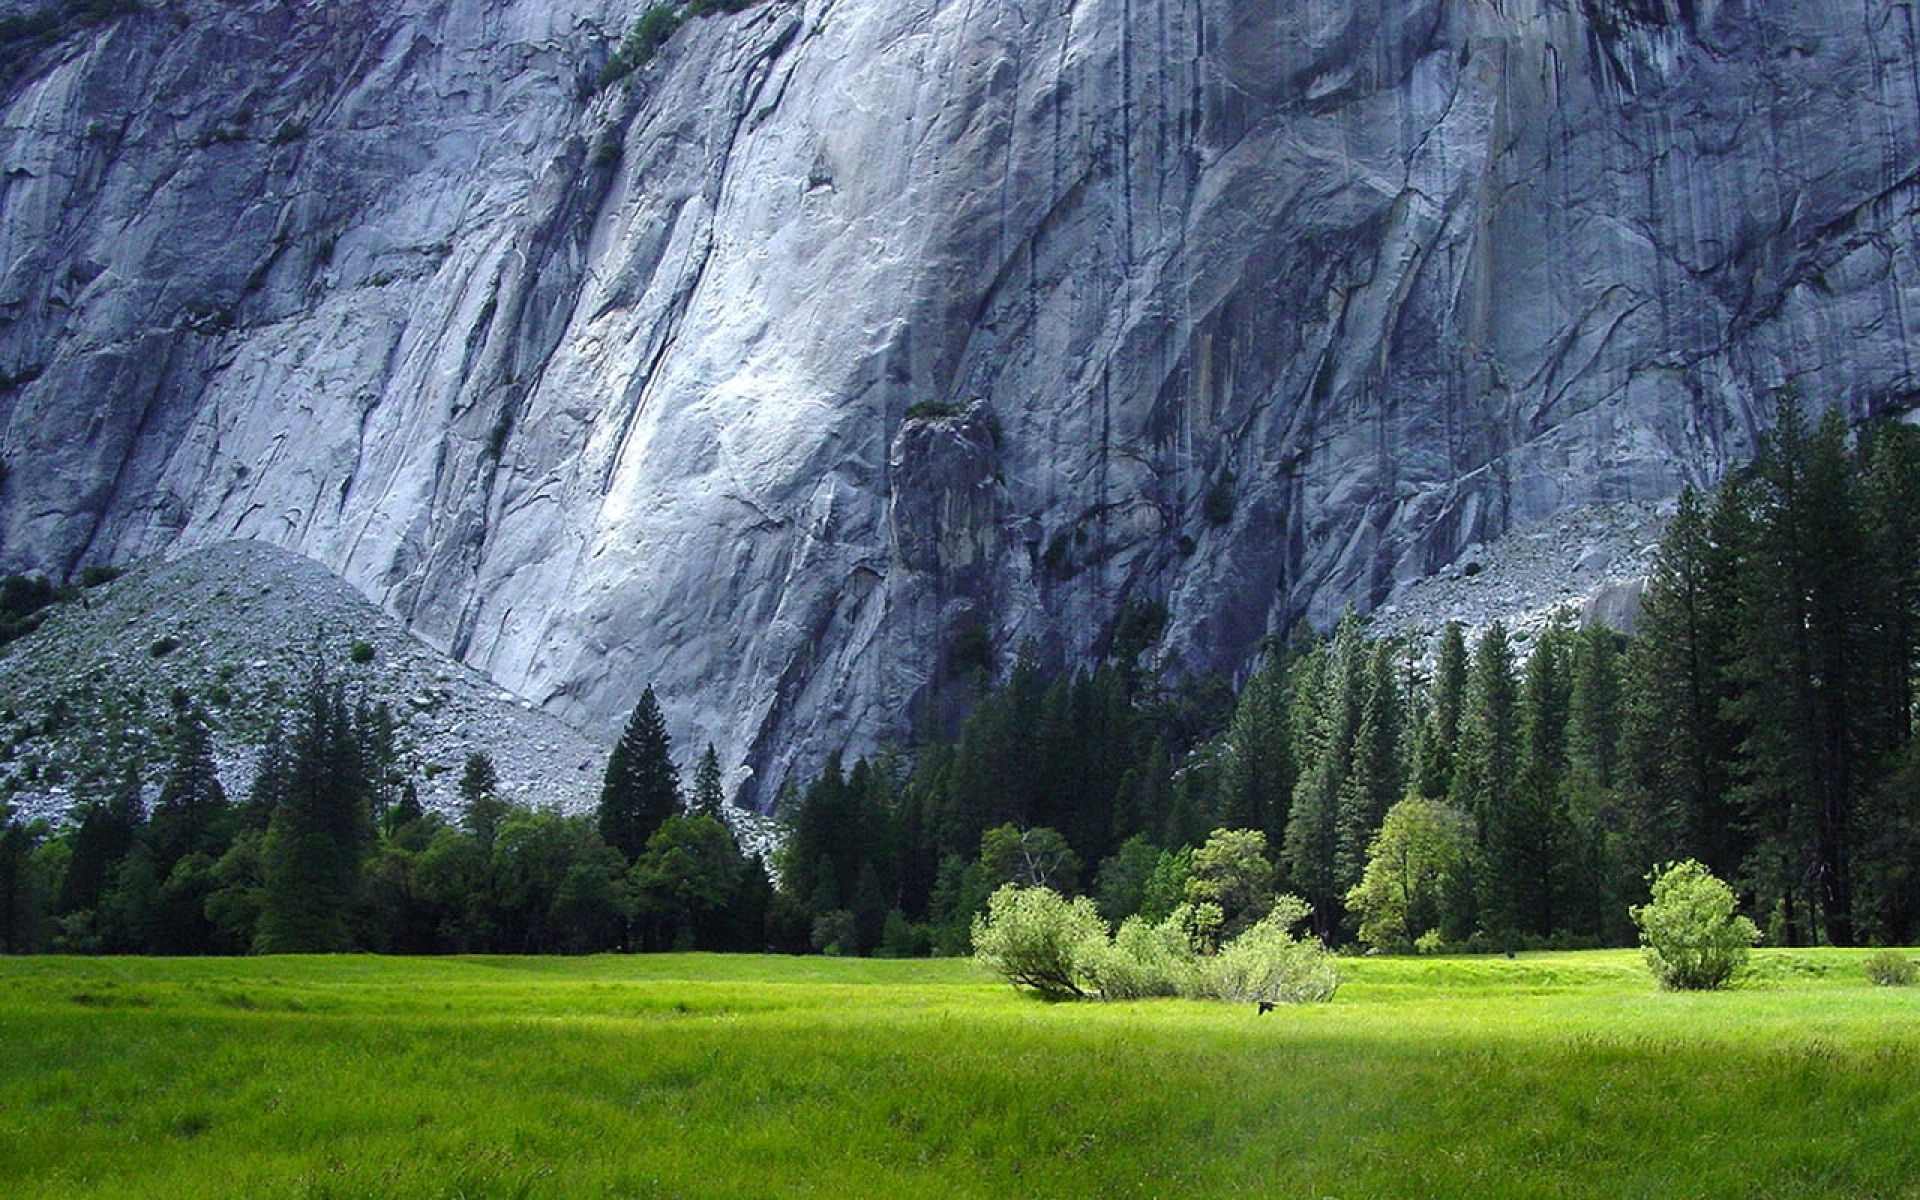 Yosemite National Park Scenery wallpapers Yosemite National Park 1920x1200